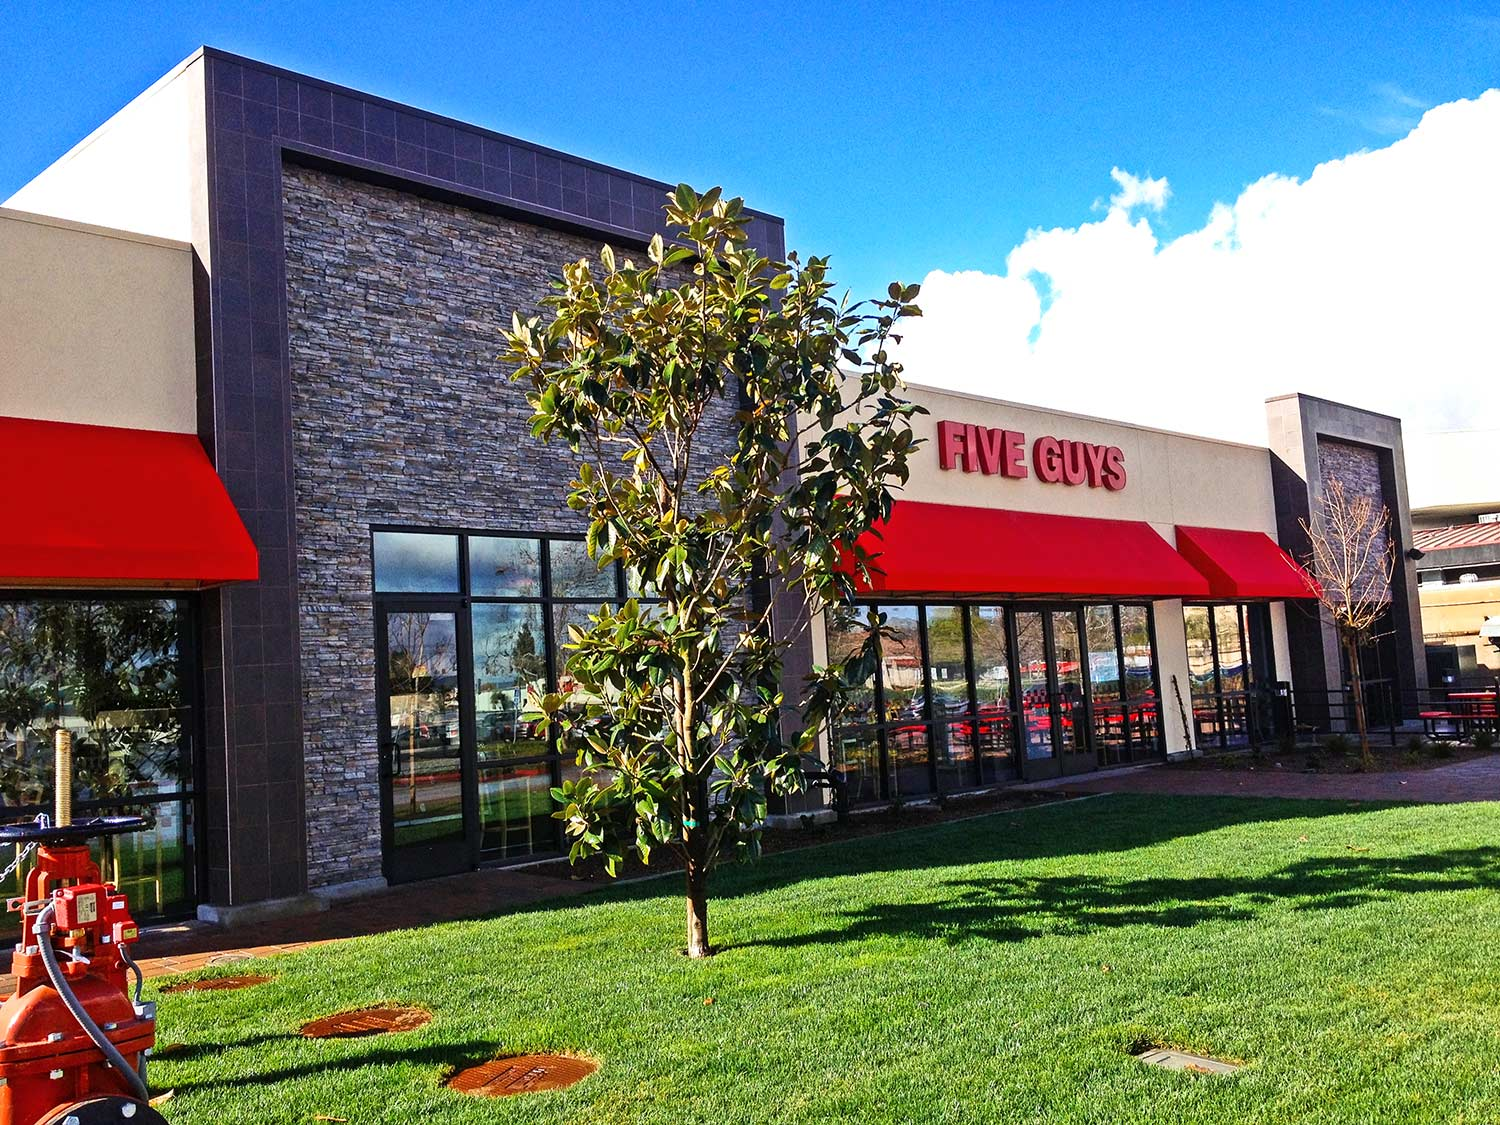 Five Guys Burgers and Fries building exterior